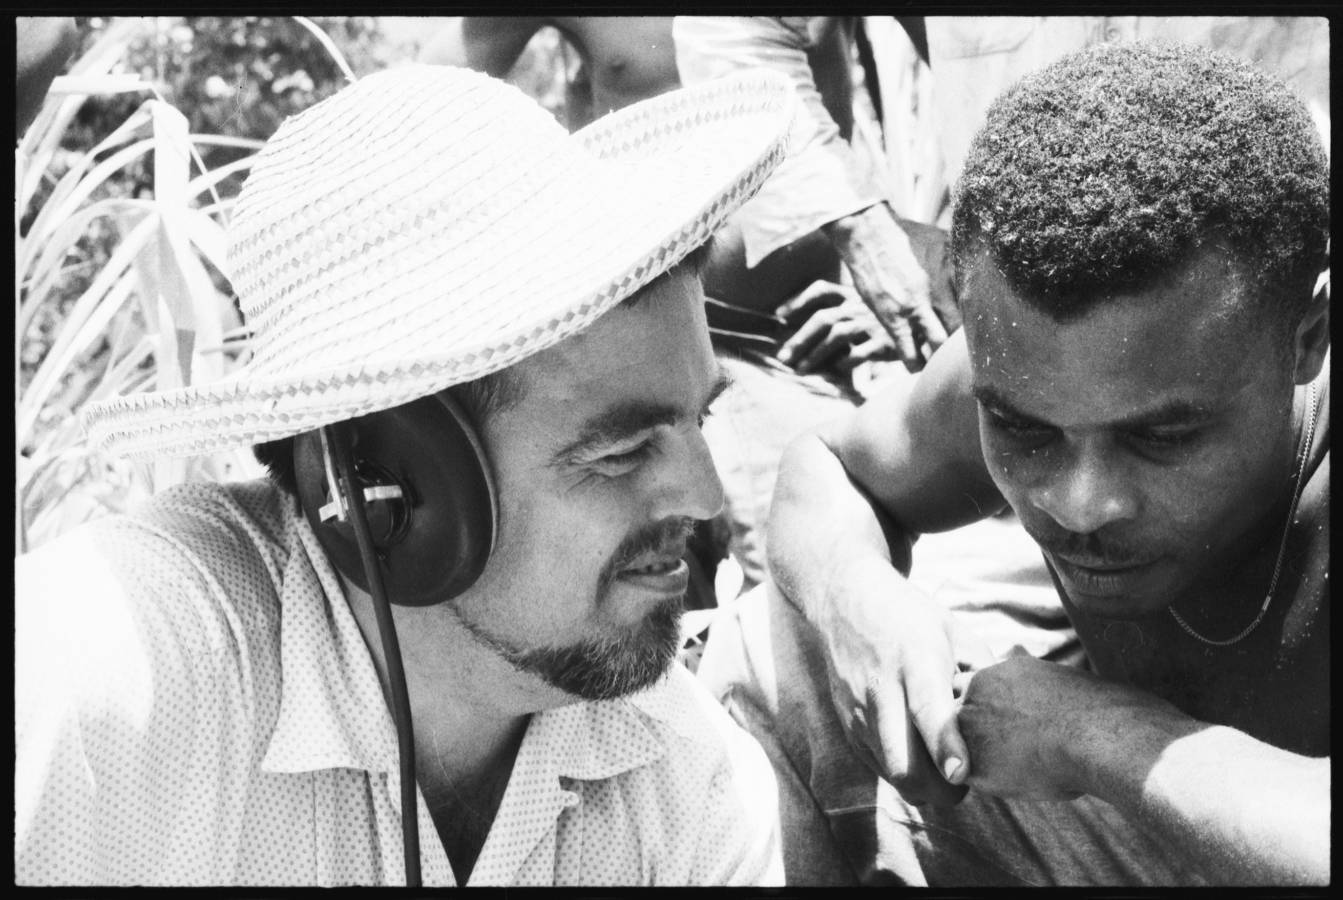 Photo of Alan Lomax and Raphael Hurtault listening to playback of an audio recording. La Plaine, Dominica. June 1962